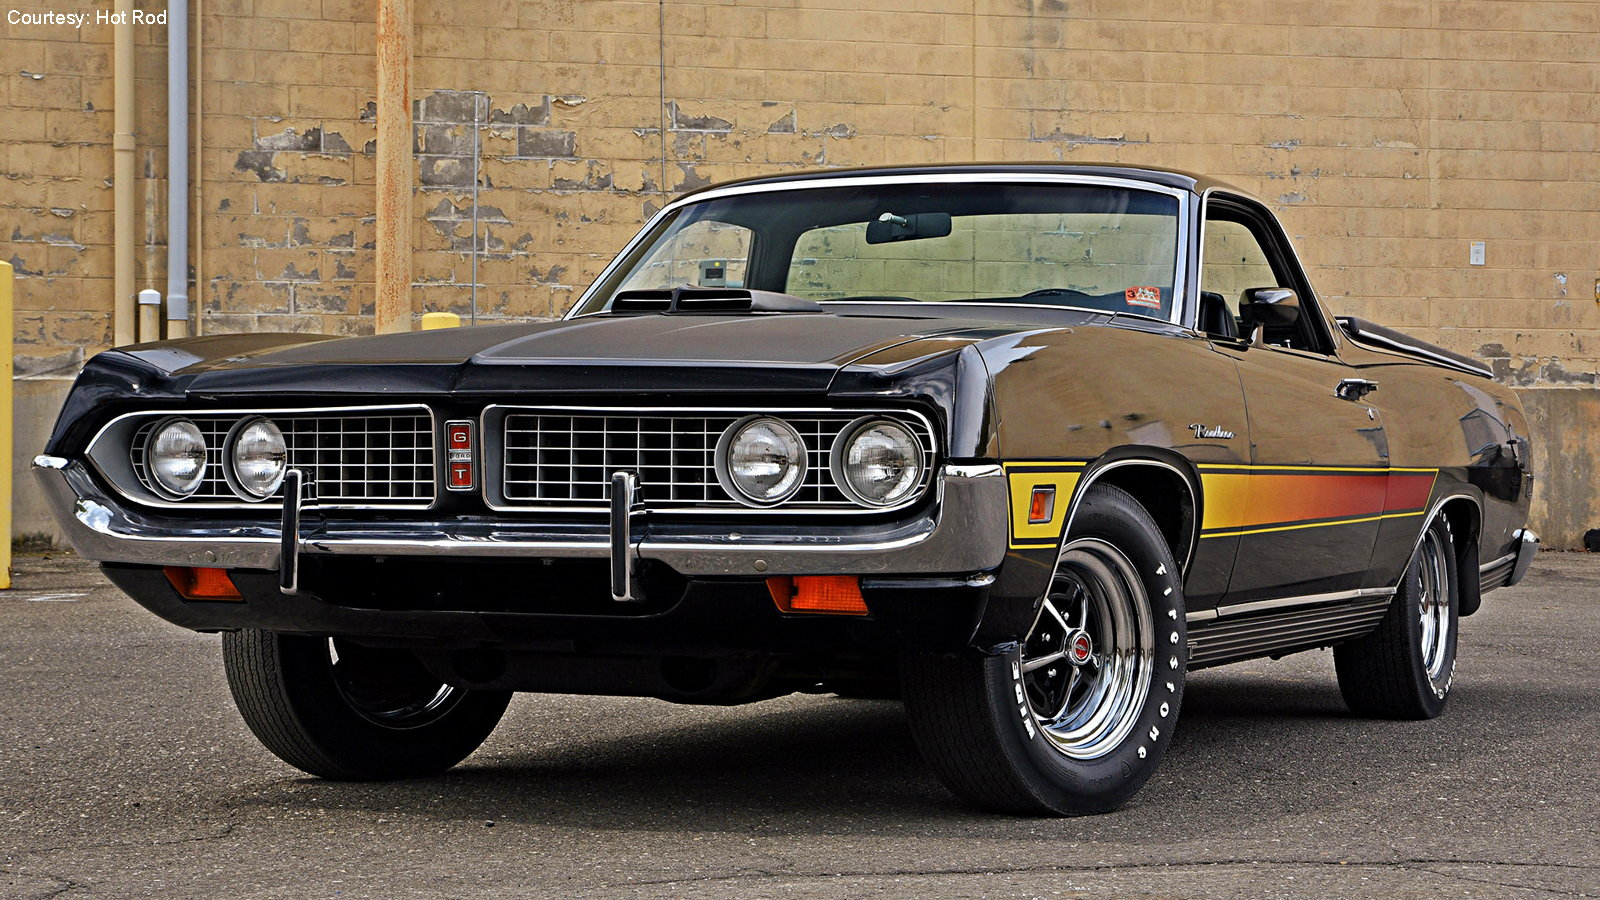 Man's Search for Ranchero of his Youth Ends With 1971 GT